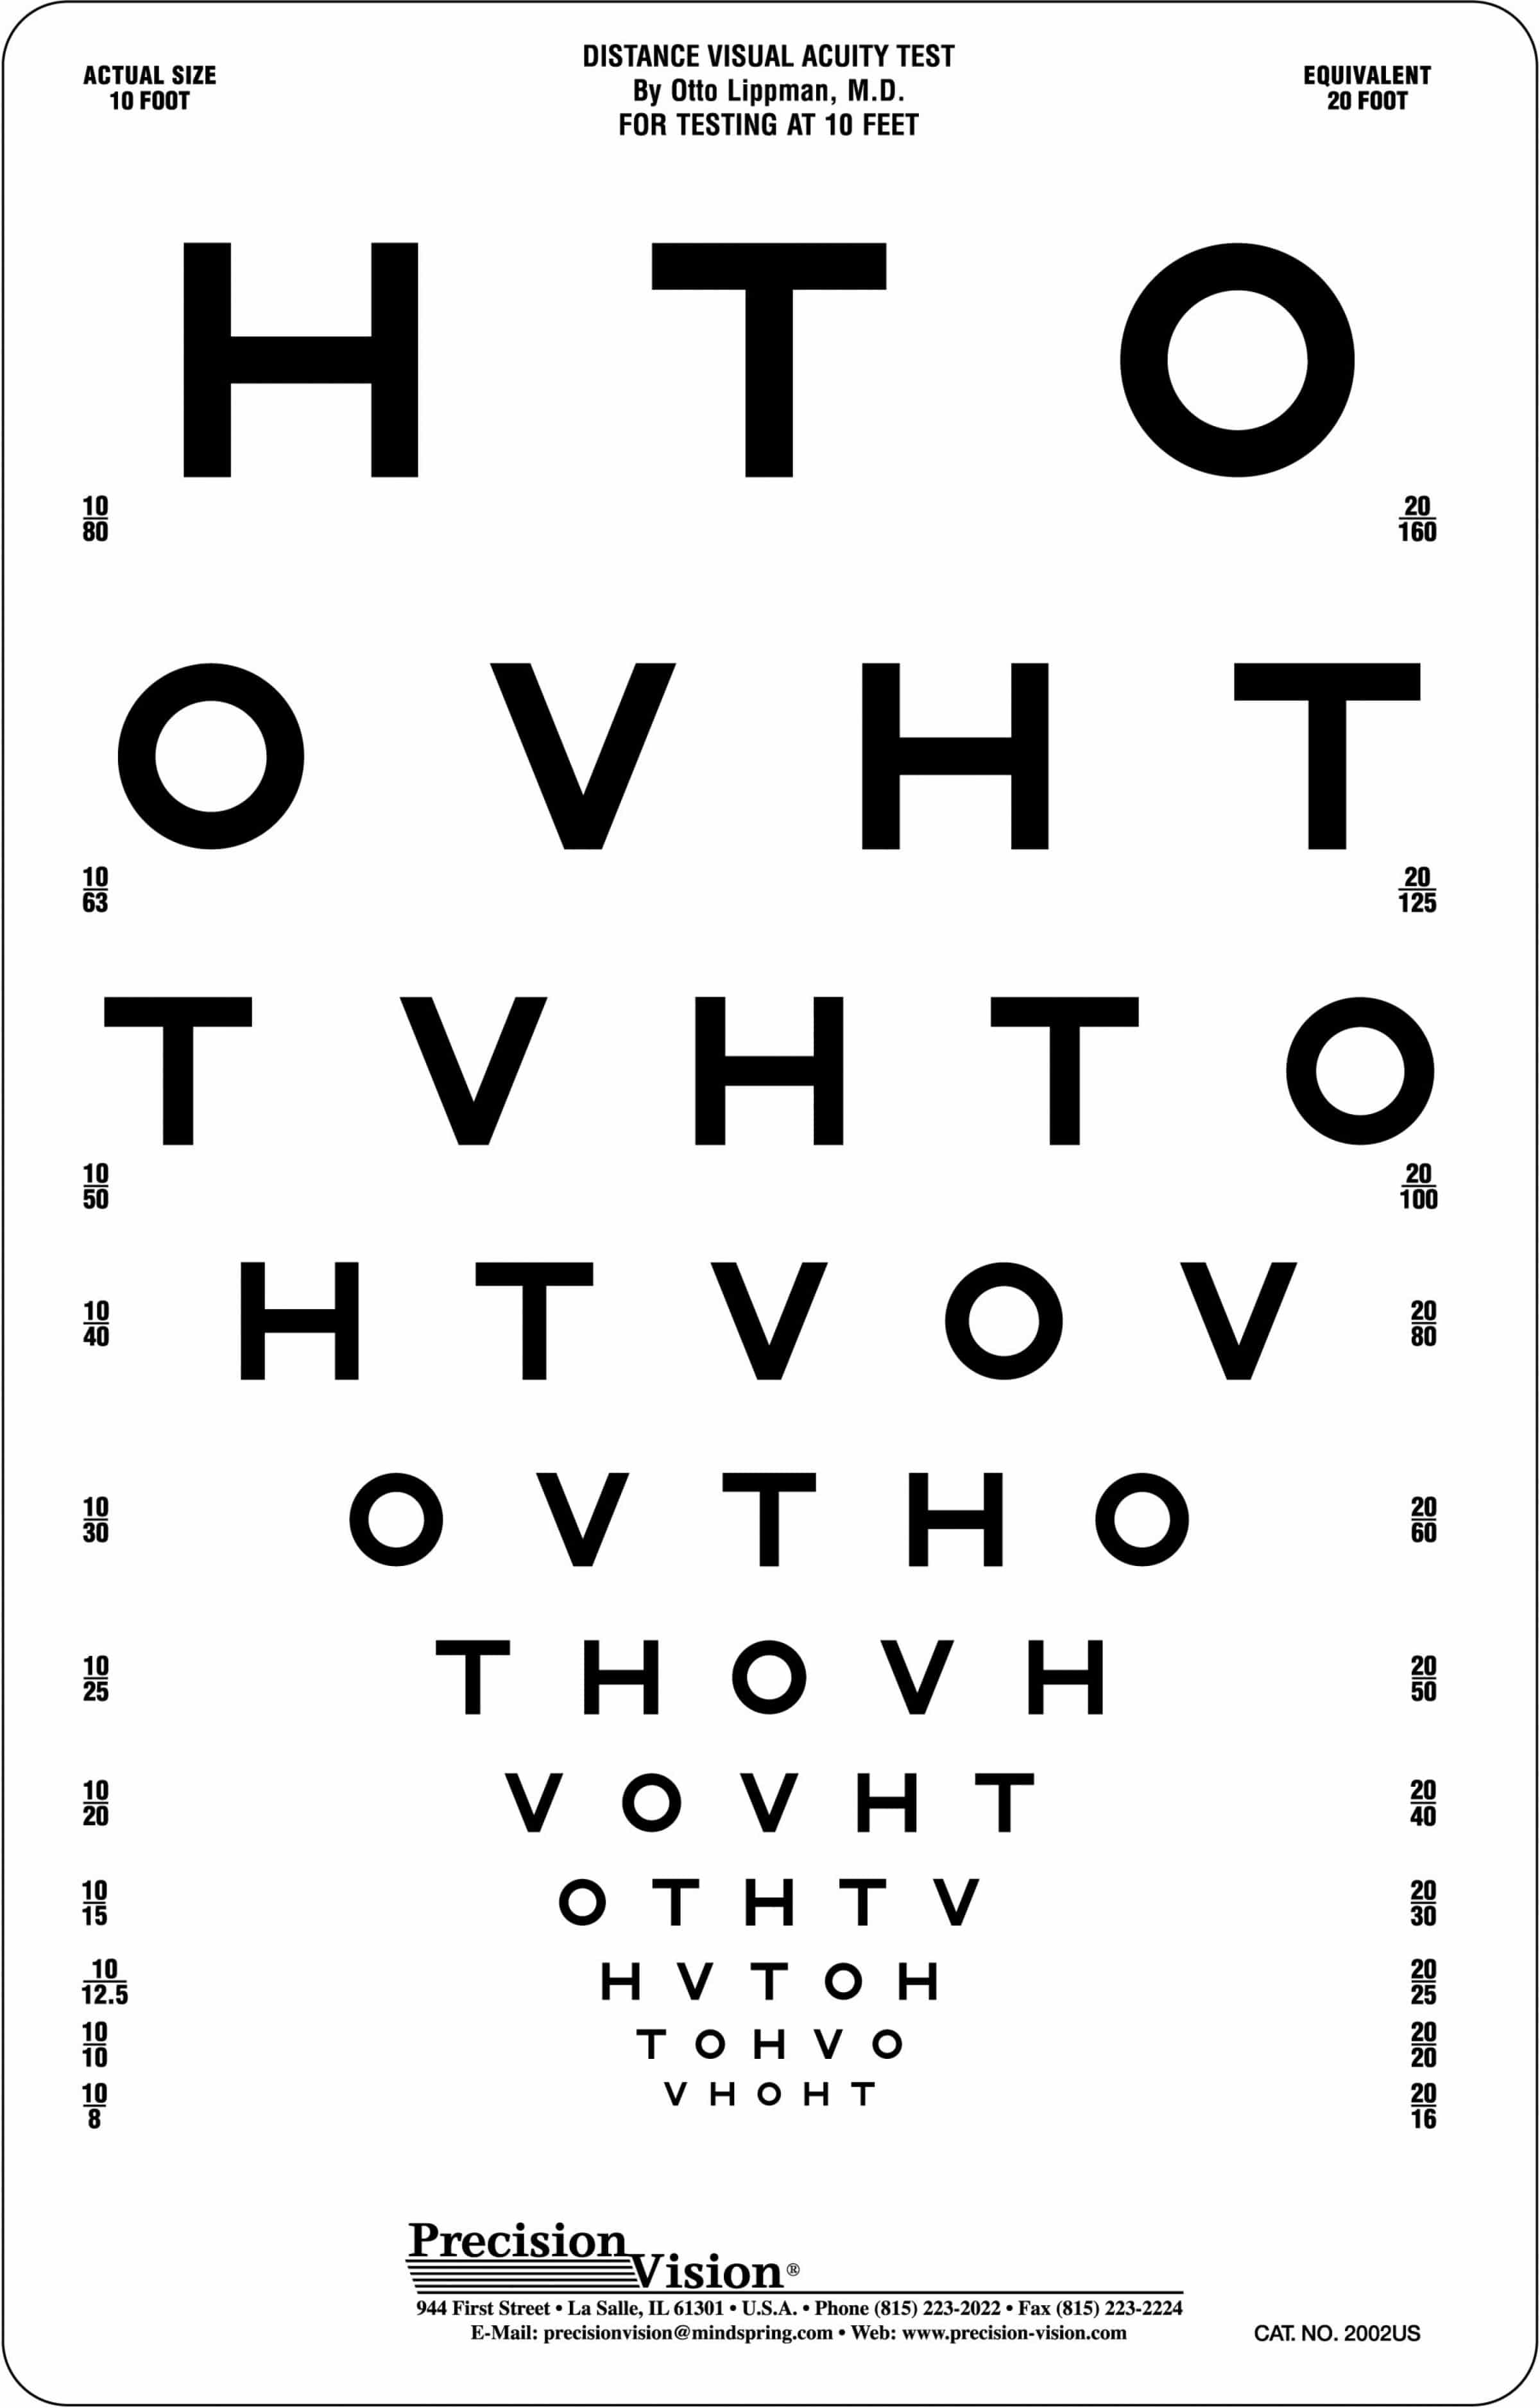 Hotv visual acuity chart 10ft precision vision hotv visual acuity chart 10ft geenschuldenfo Choice Image